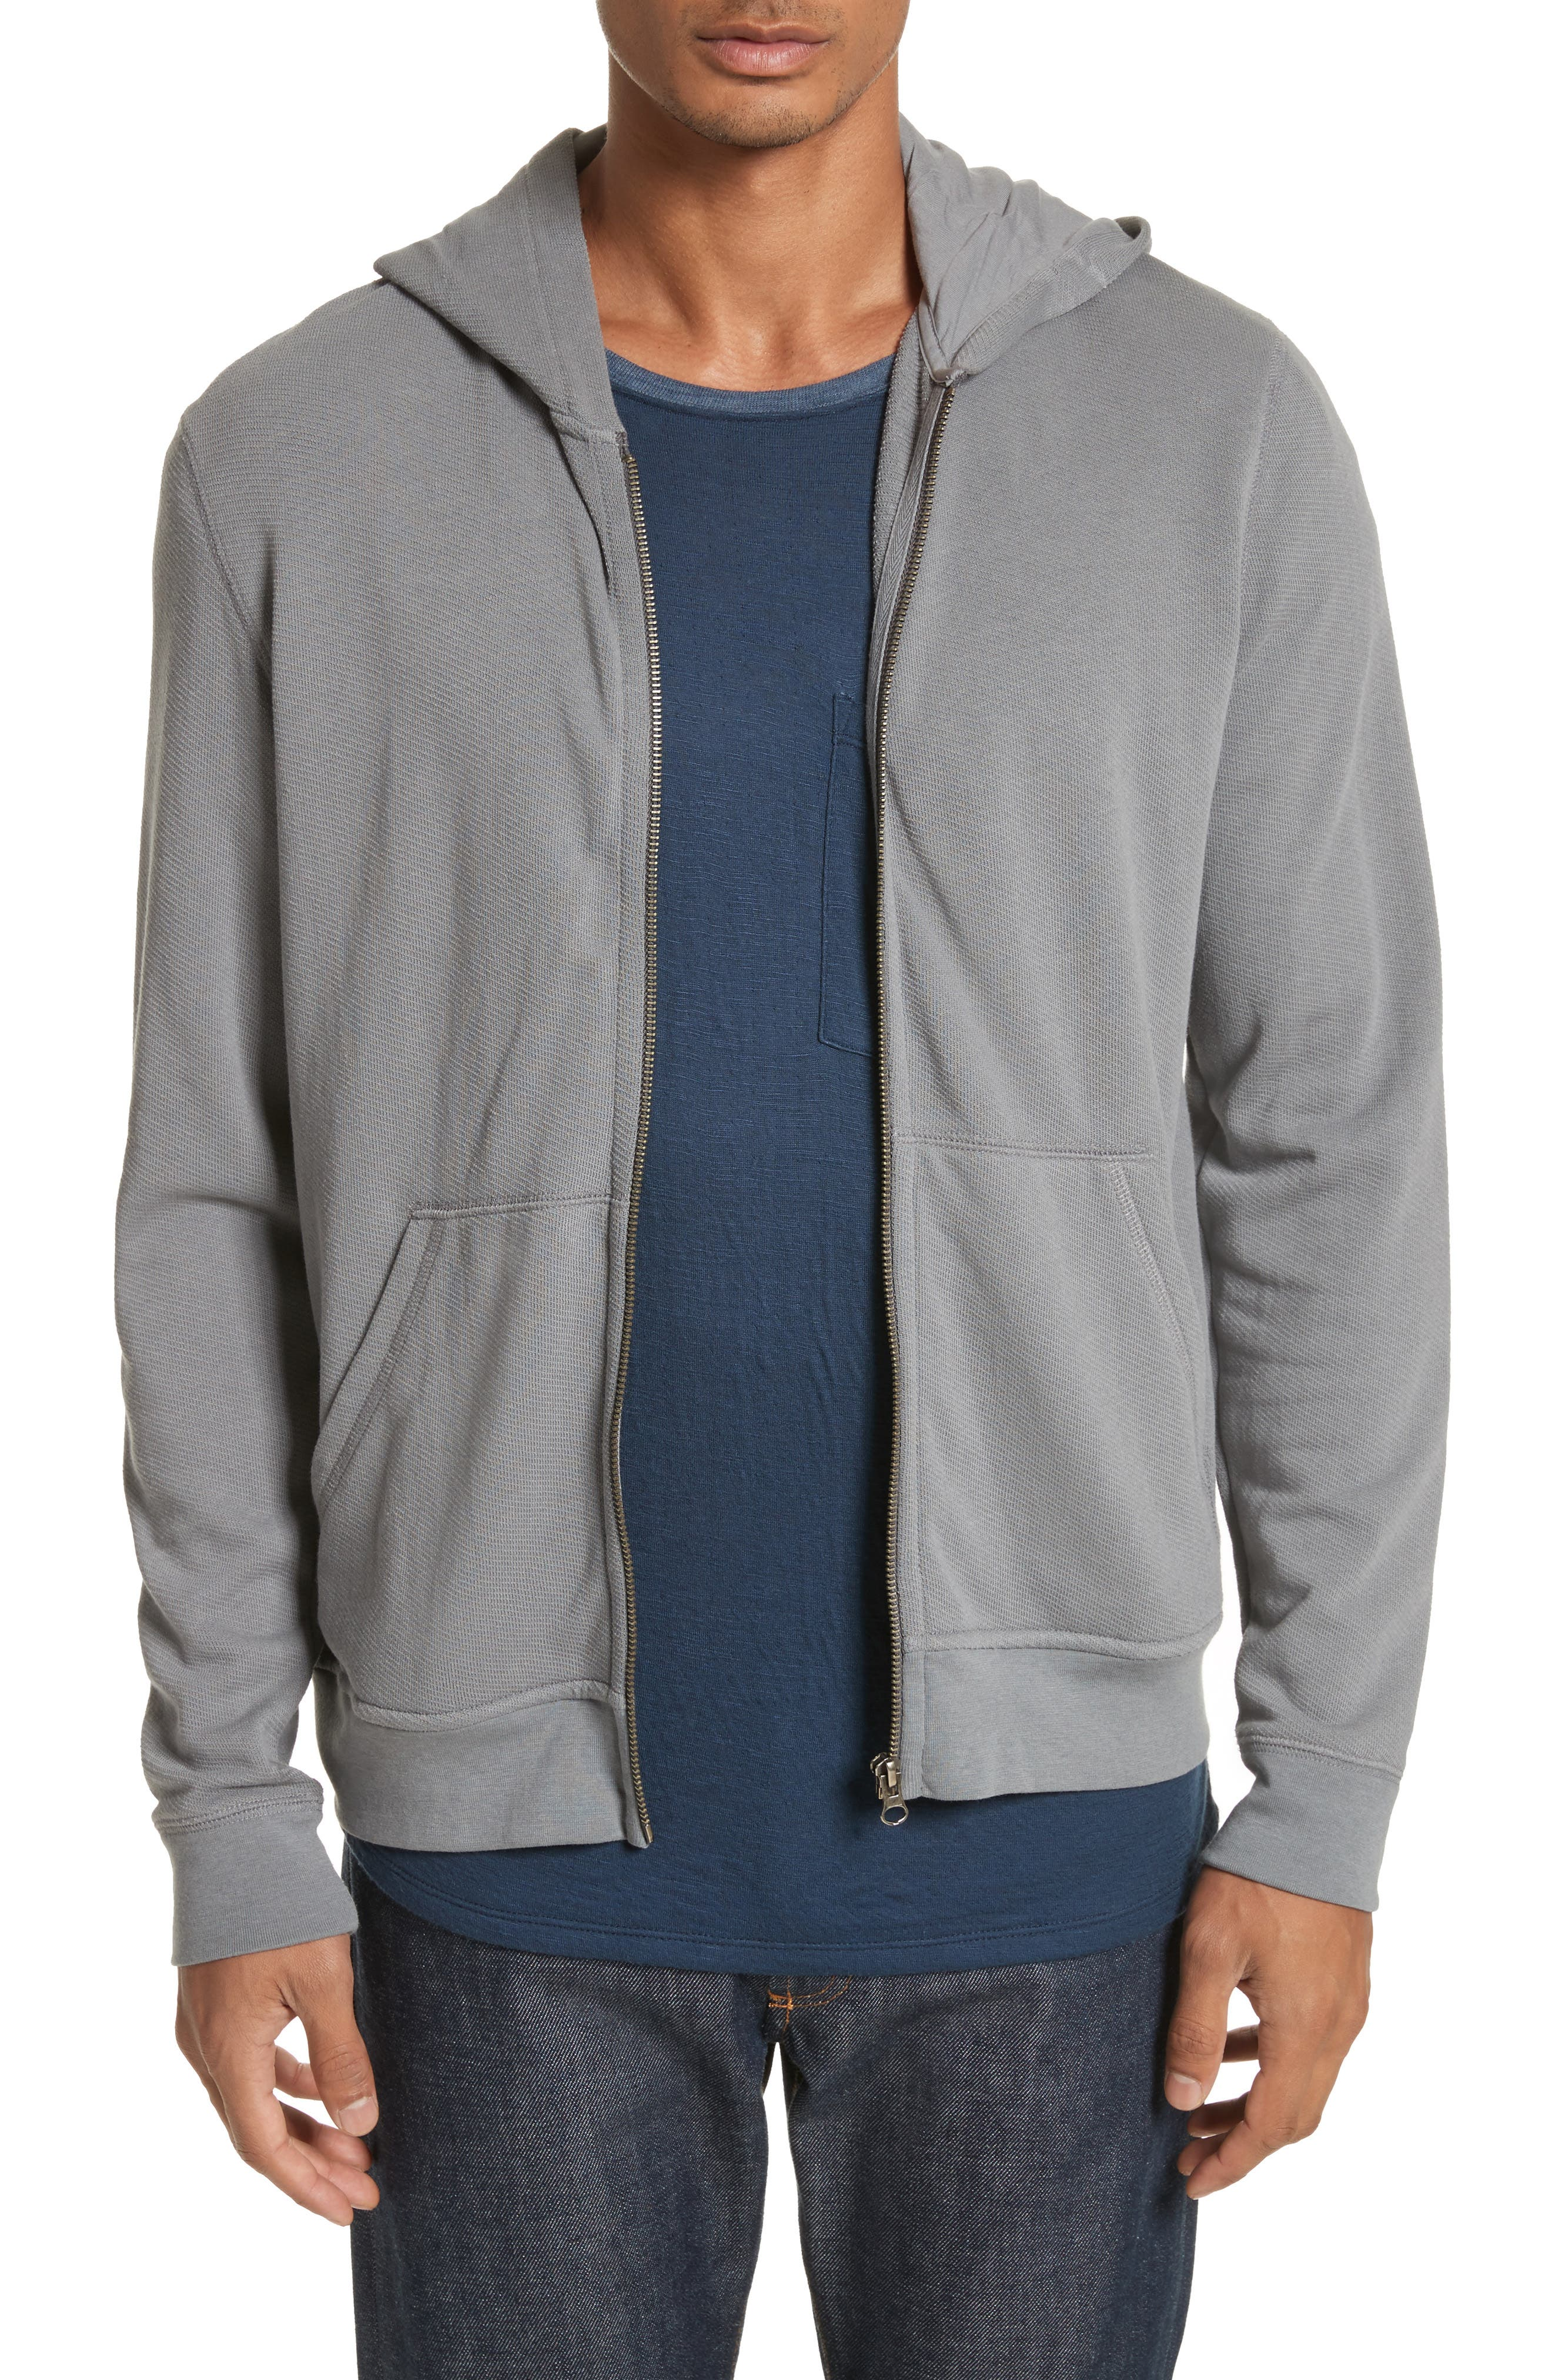 French Terry Zip Hoodie,                             Main thumbnail 1, color,                             024